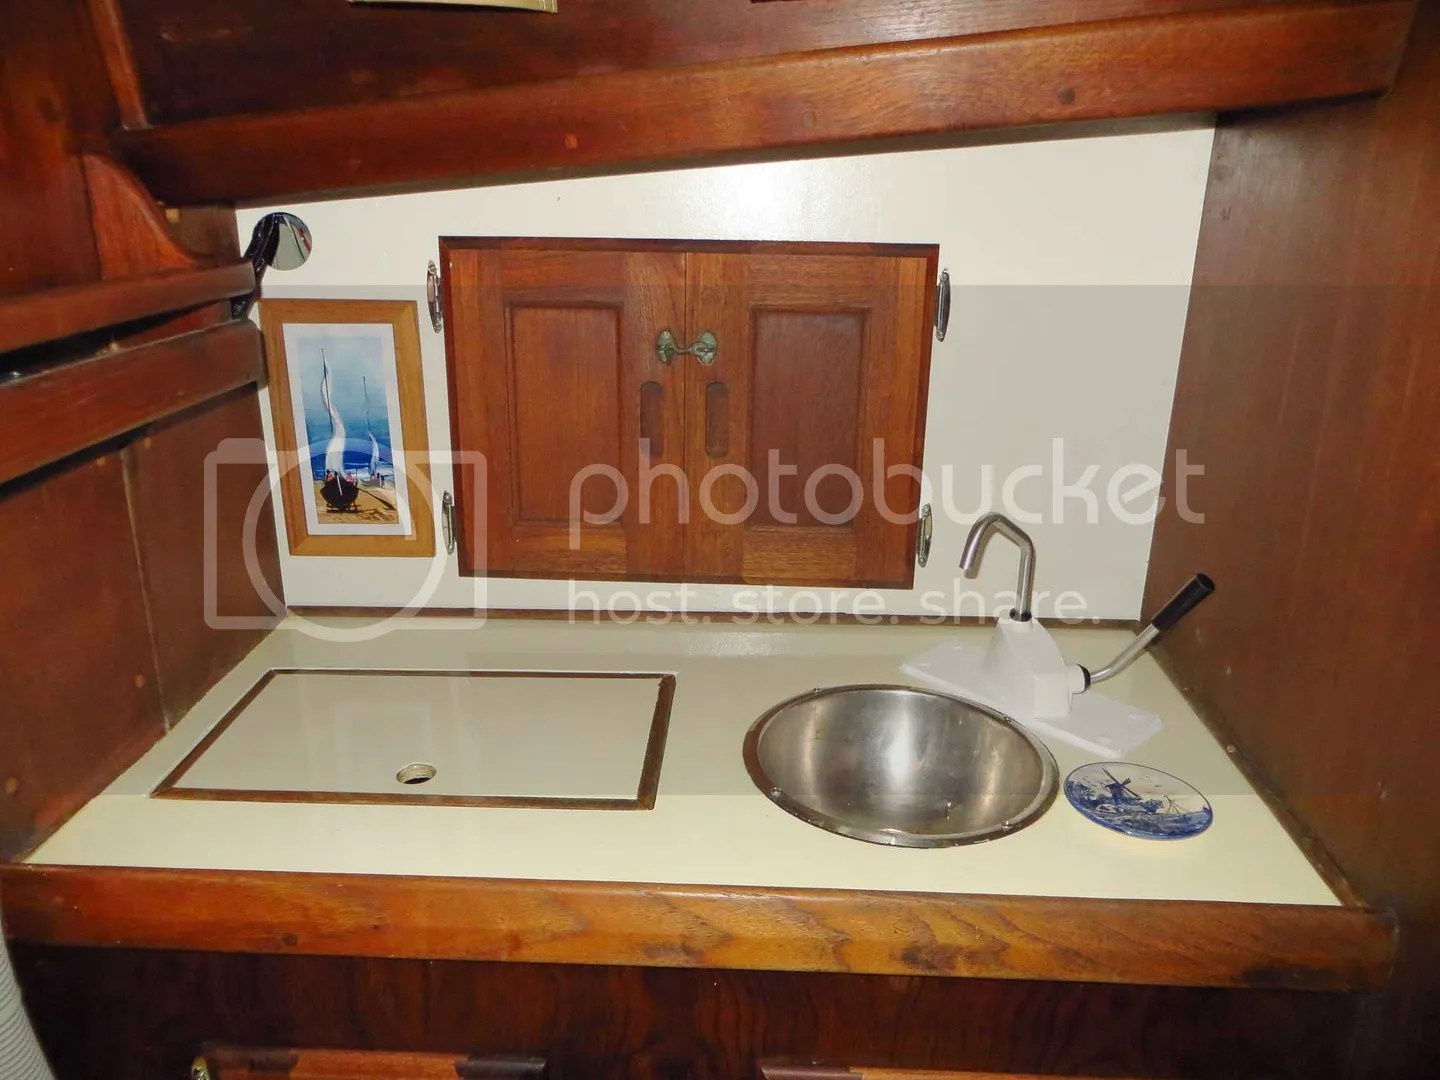 Marine fresh water plumbing and filtration head sink